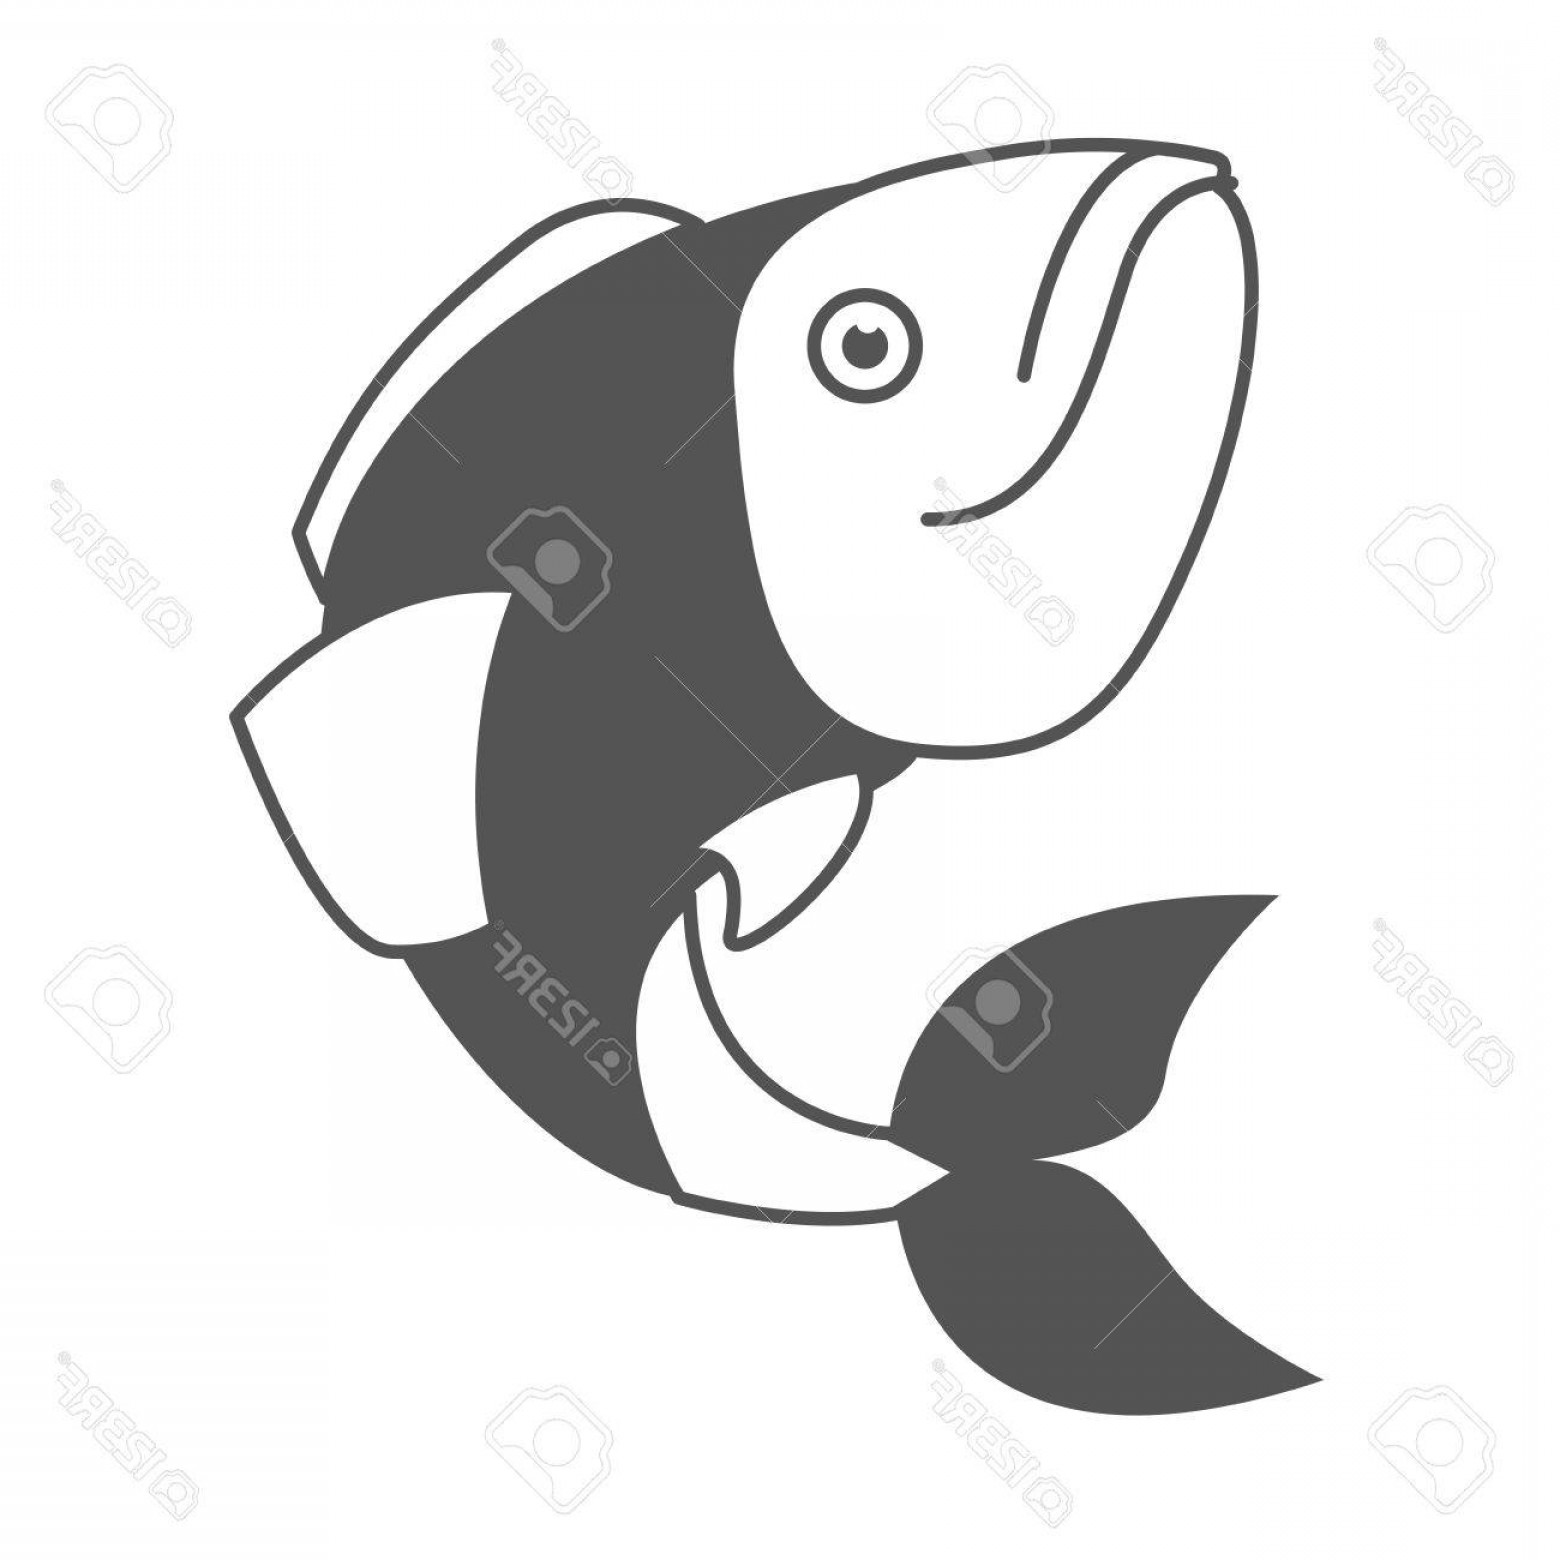 Largemouth Bass Silhouette Vector: Photostock Vector Monochrome Silhouette Of Largemouth Bass Fish Vector Illustration